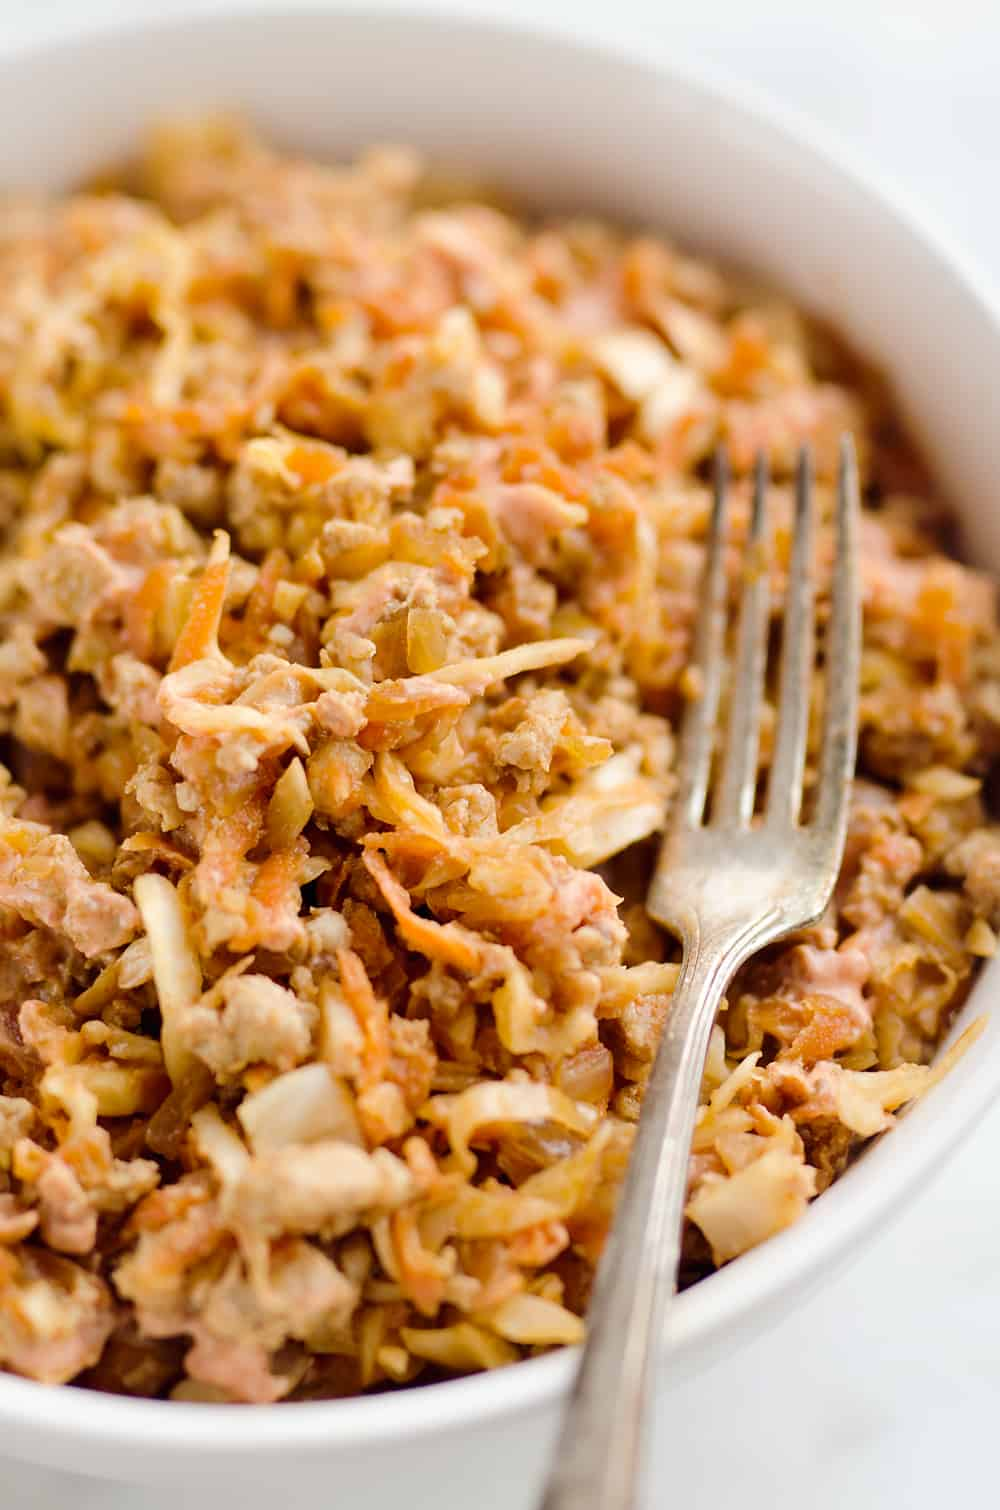 Turkey Egg Roll Bowl with Creamy Sriracha is an amazingly healthy and delicious bowl of goodness perfect for lunch or dinner! Sauteed cabbage, carrots, onion and ground turkey are tossed with an Asian inspired sauce and topped with a creamy Greek yogurt sriracha mayo sauce.